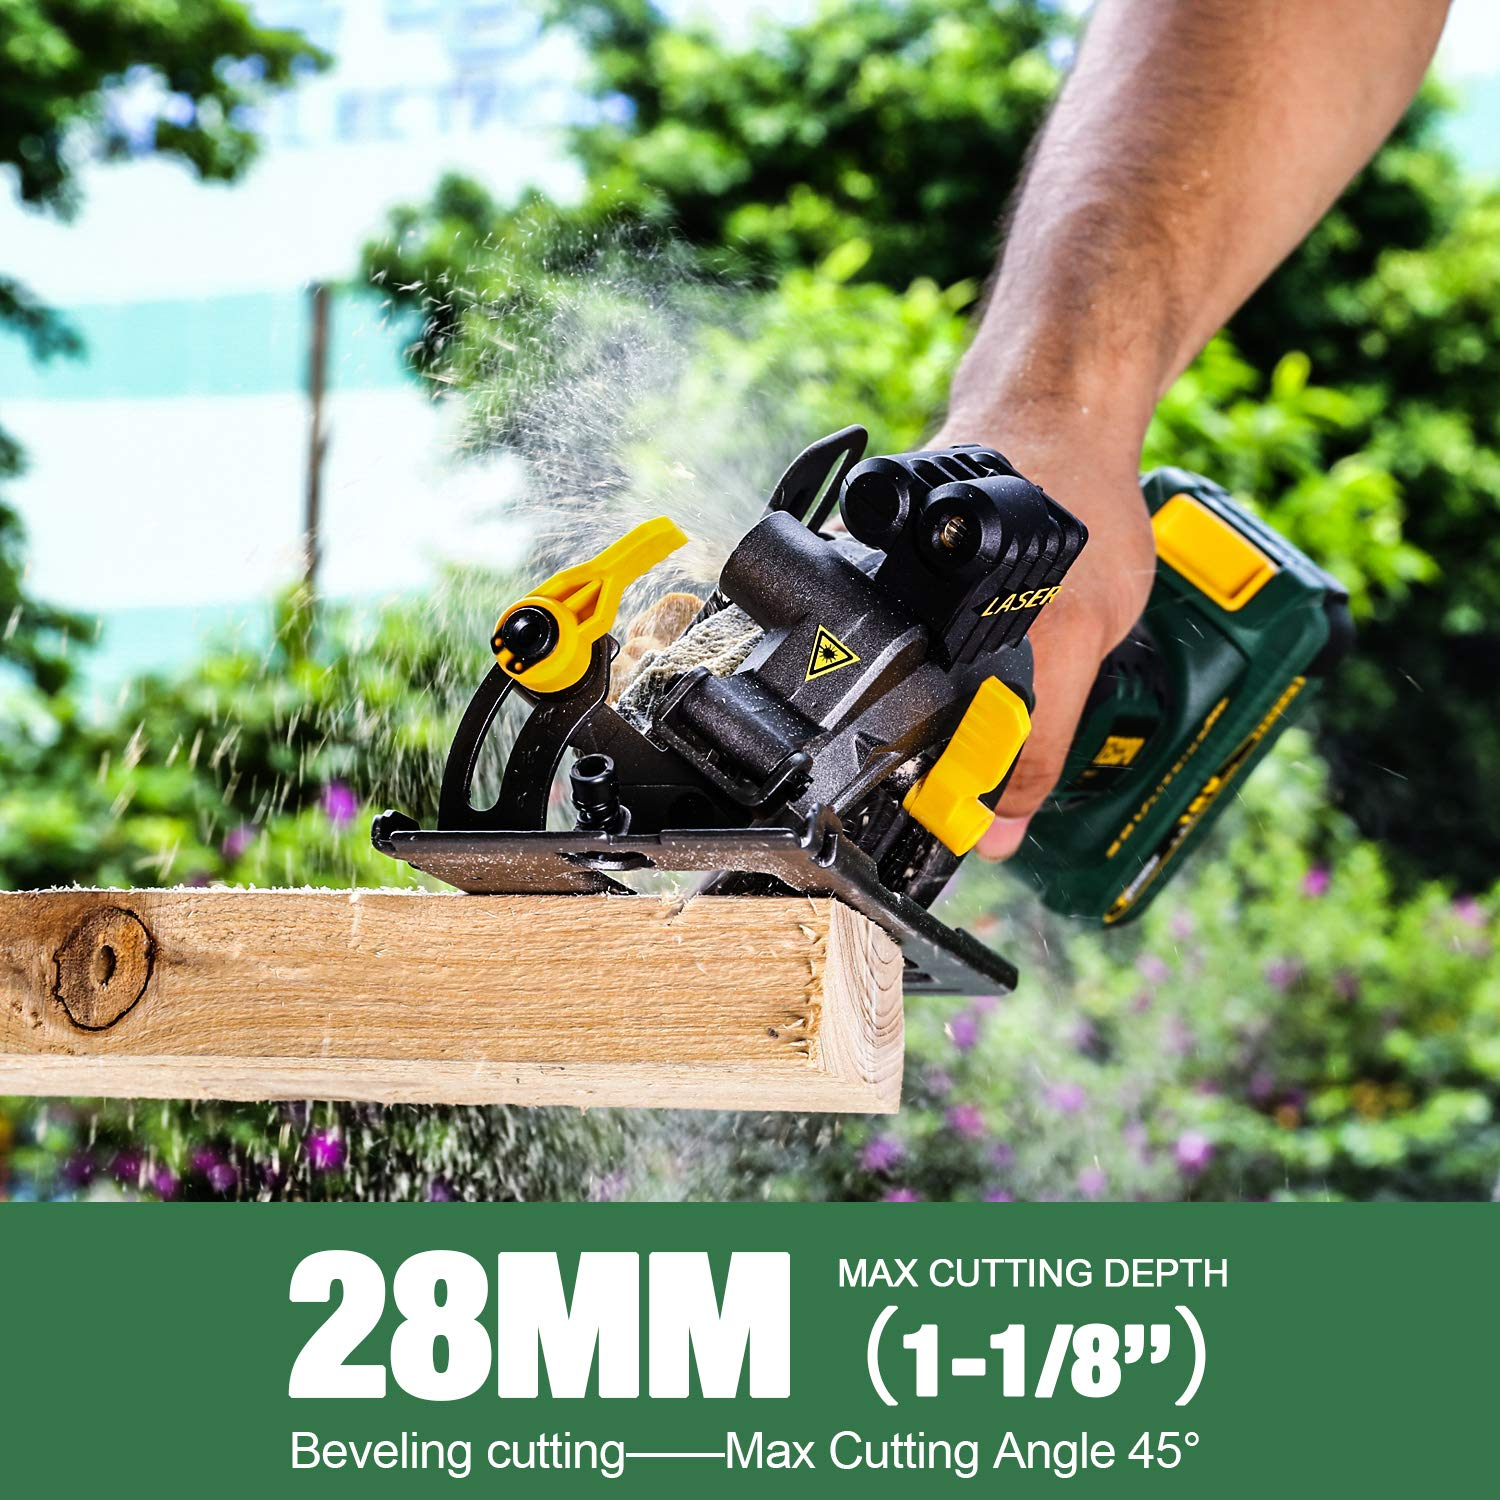 Cordless Circular Saw 1 Hour Fast Charger Bevels up to 45/° TDMS22P 24T 115mm Blade 4.0Ah Battery TECCPO 18V 4500RPM Laser Mini Circular Saw